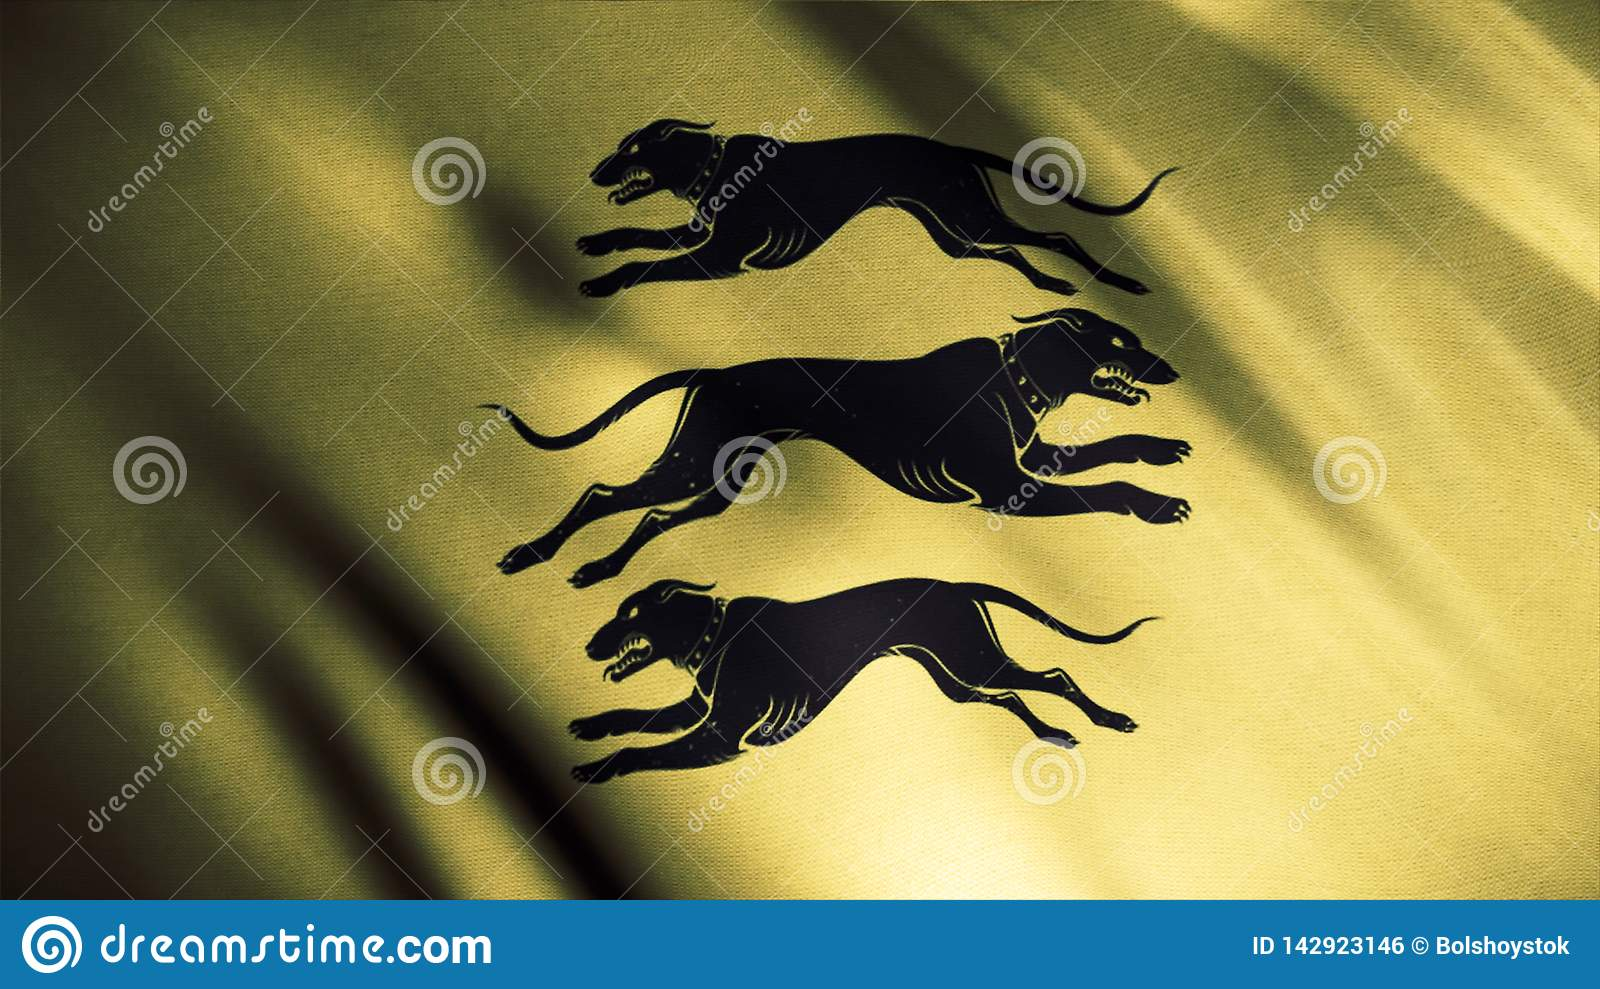 Black silhouettes of three dogs runing in different directions on golden waving flag background, seamless loop. Clegane